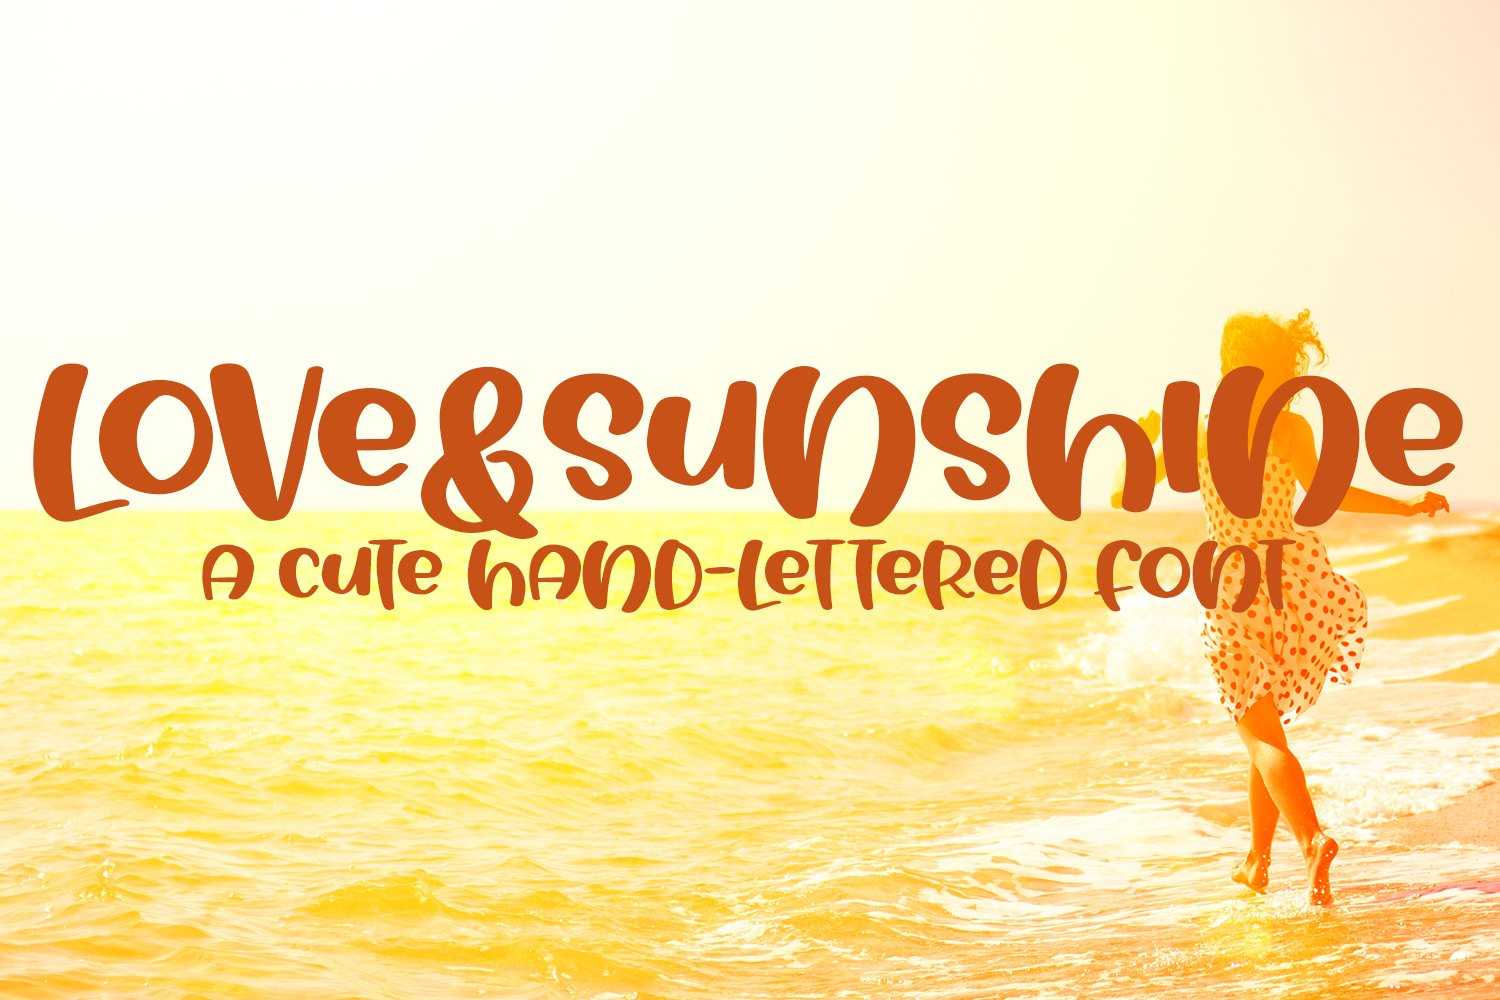 Love&Sunshine - A Cute Hand-Lettered Bold Font example image 1